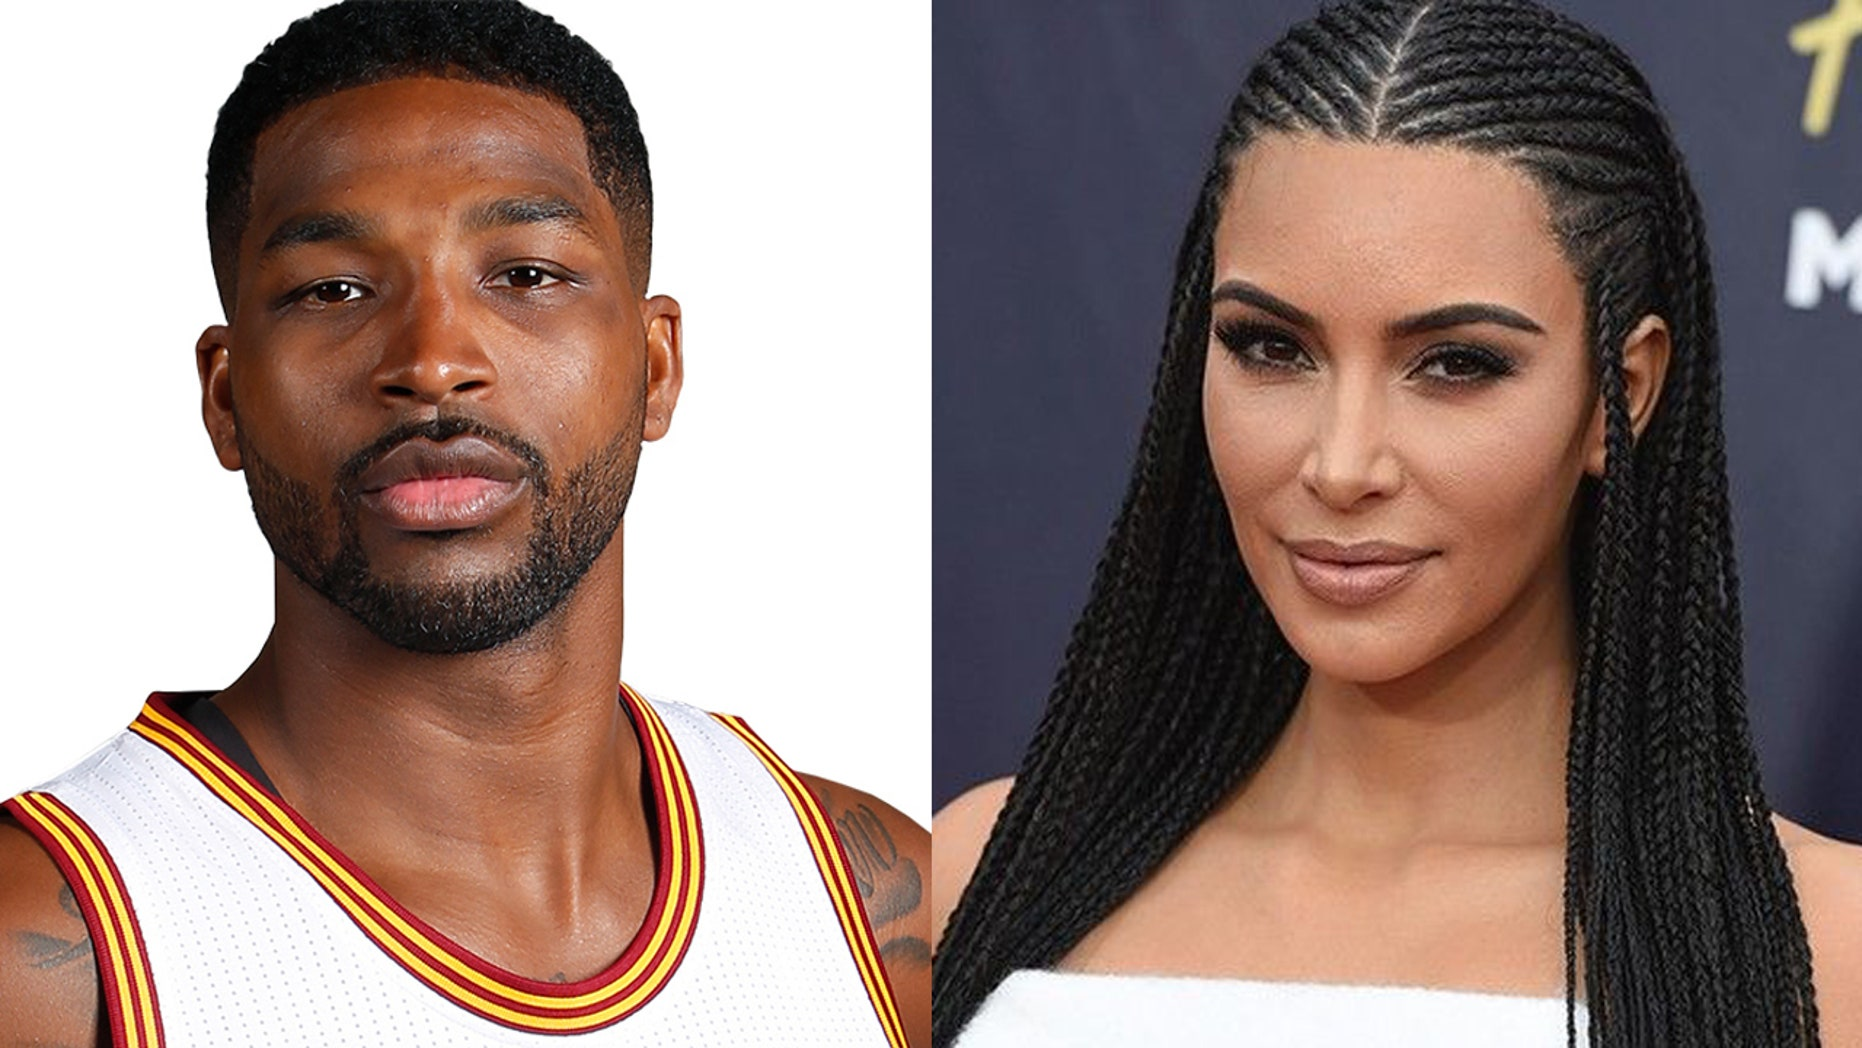 Tristan Thompson and Kim Kardashian have put aside their differences following his cheating scandal in honor of Khloe's 34th birthday.